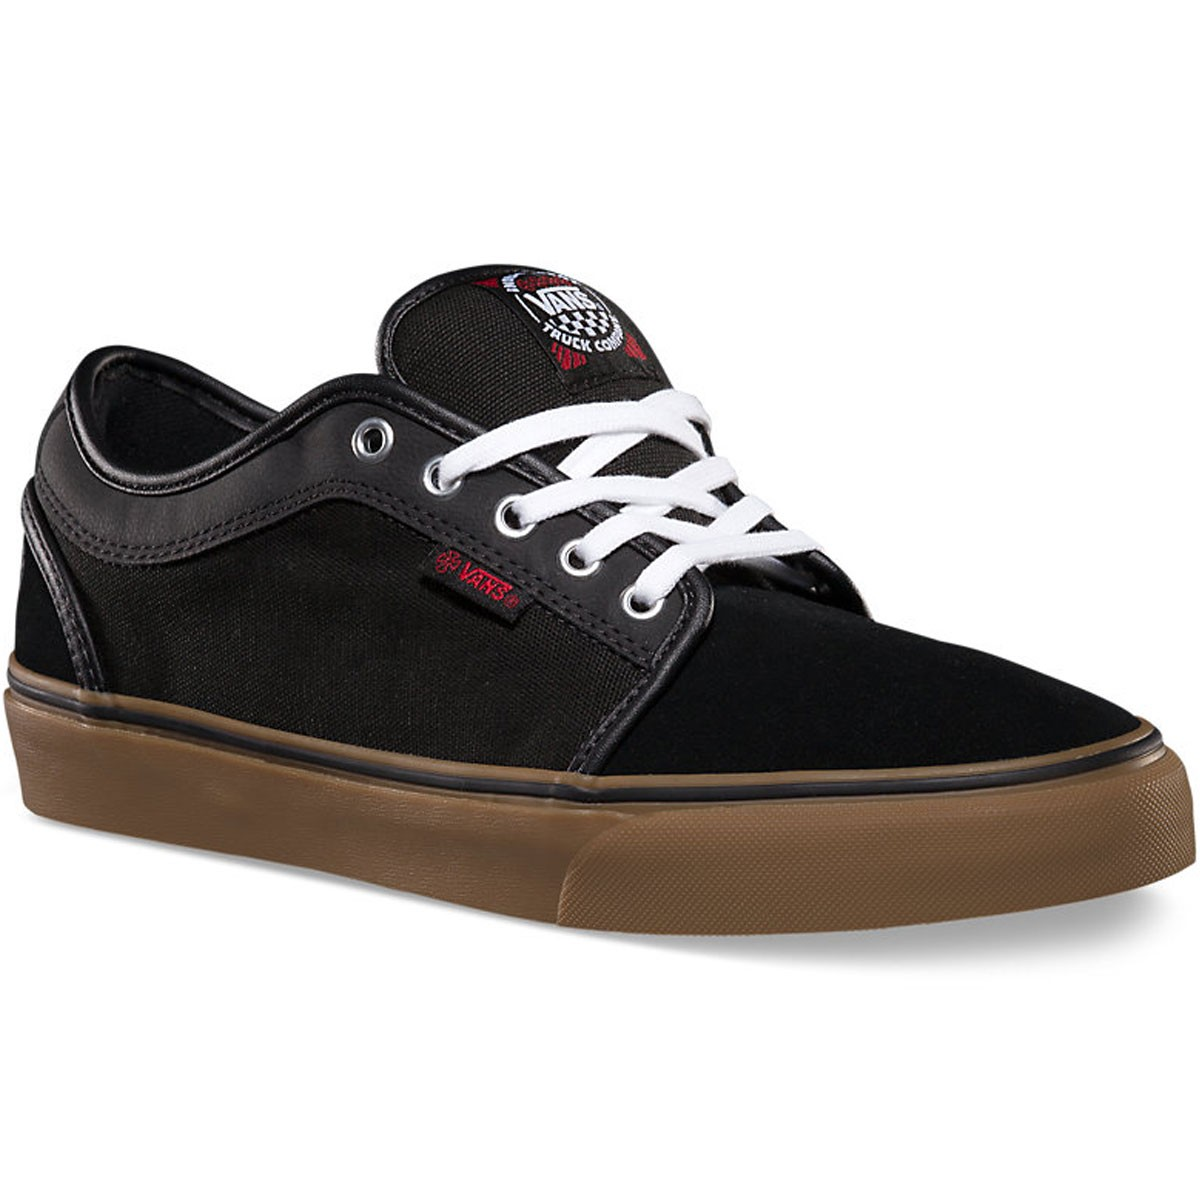 Vans Independent Chukka Low Shoes - Black - 10.0